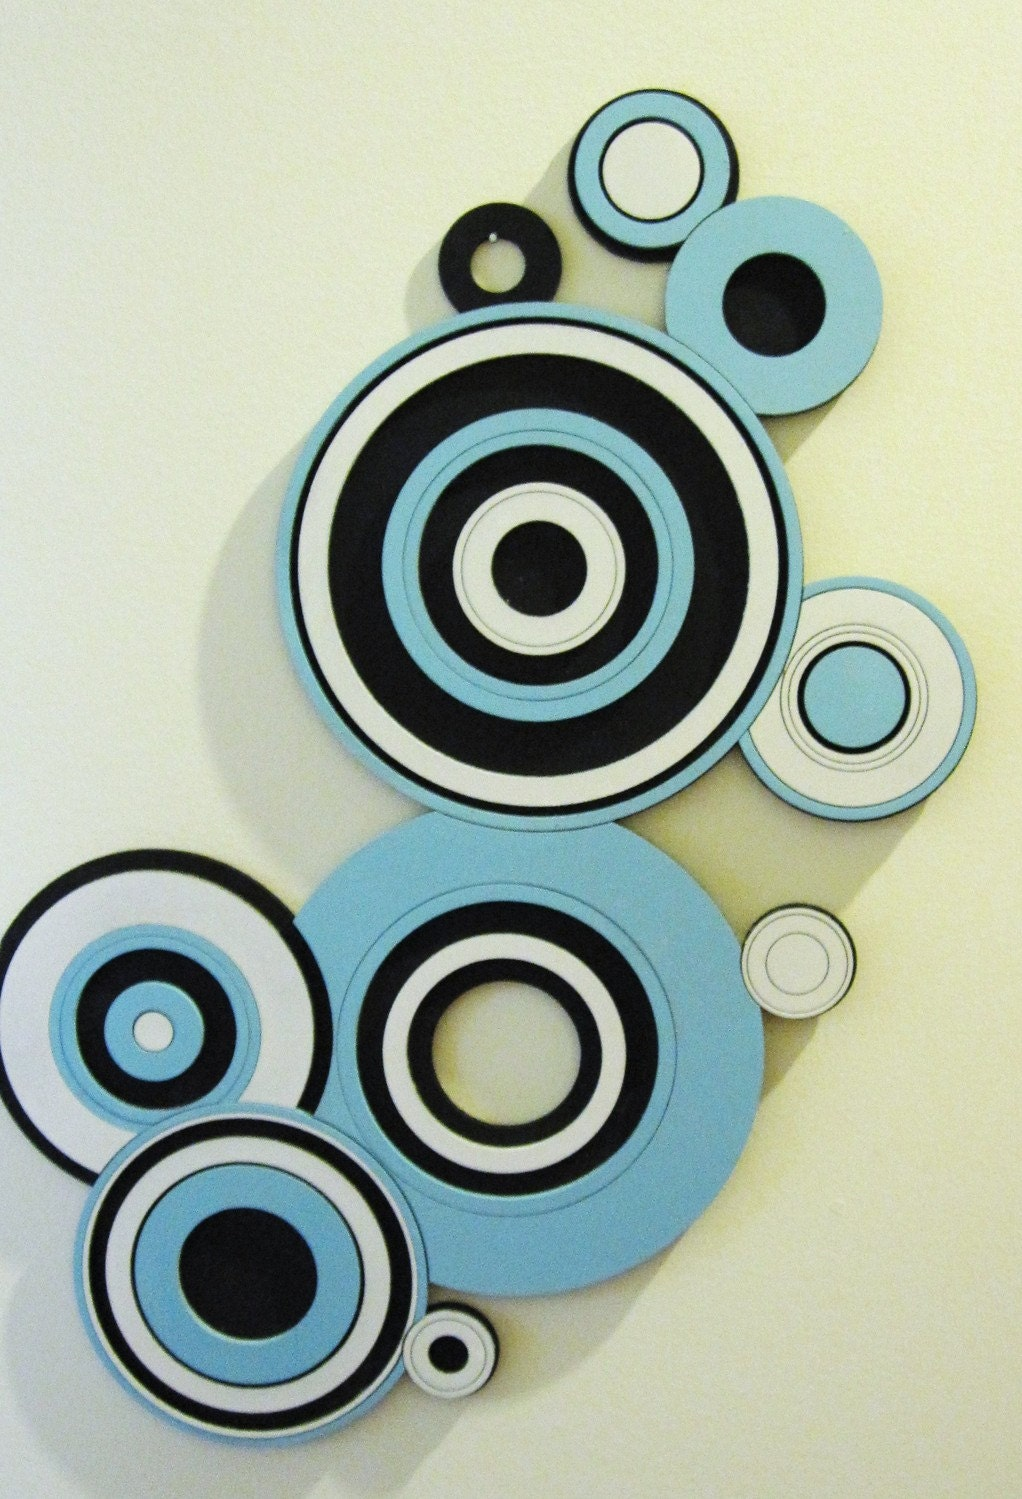 Charmant Circle Wall Art Black White And Blue By 3princessesengraving